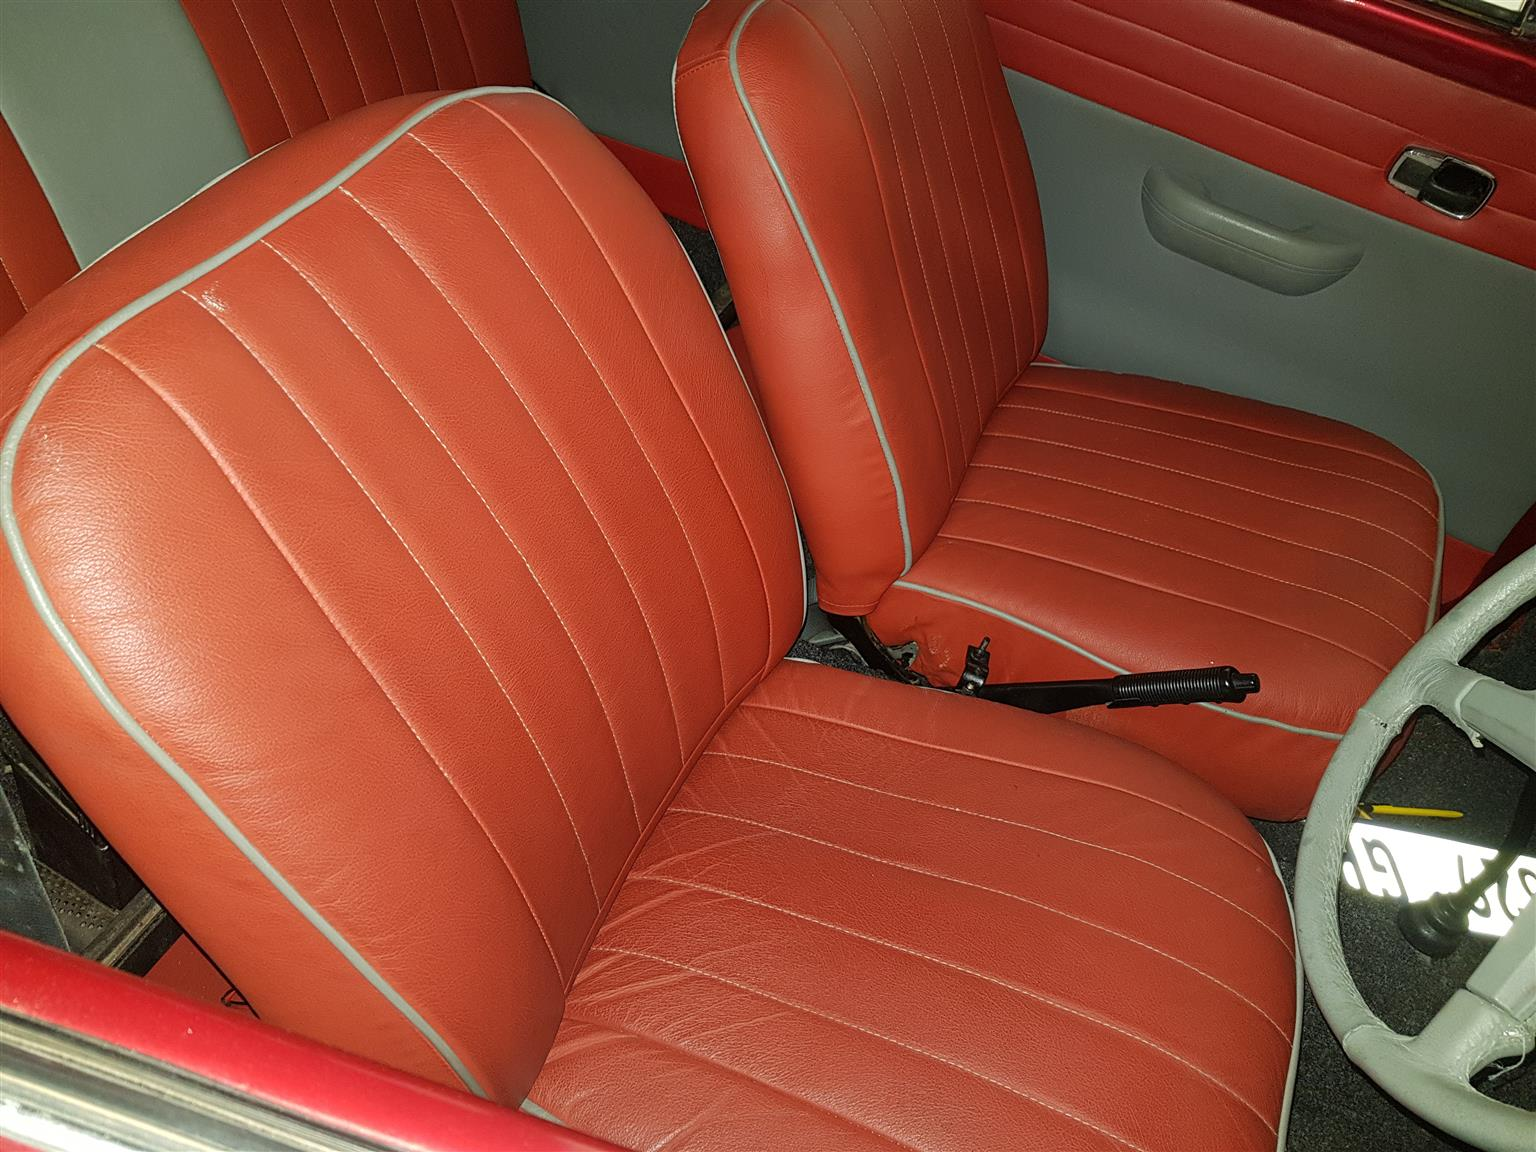 jbugs category padding beetle forest vw upholstery volkswagen rear super seat covers